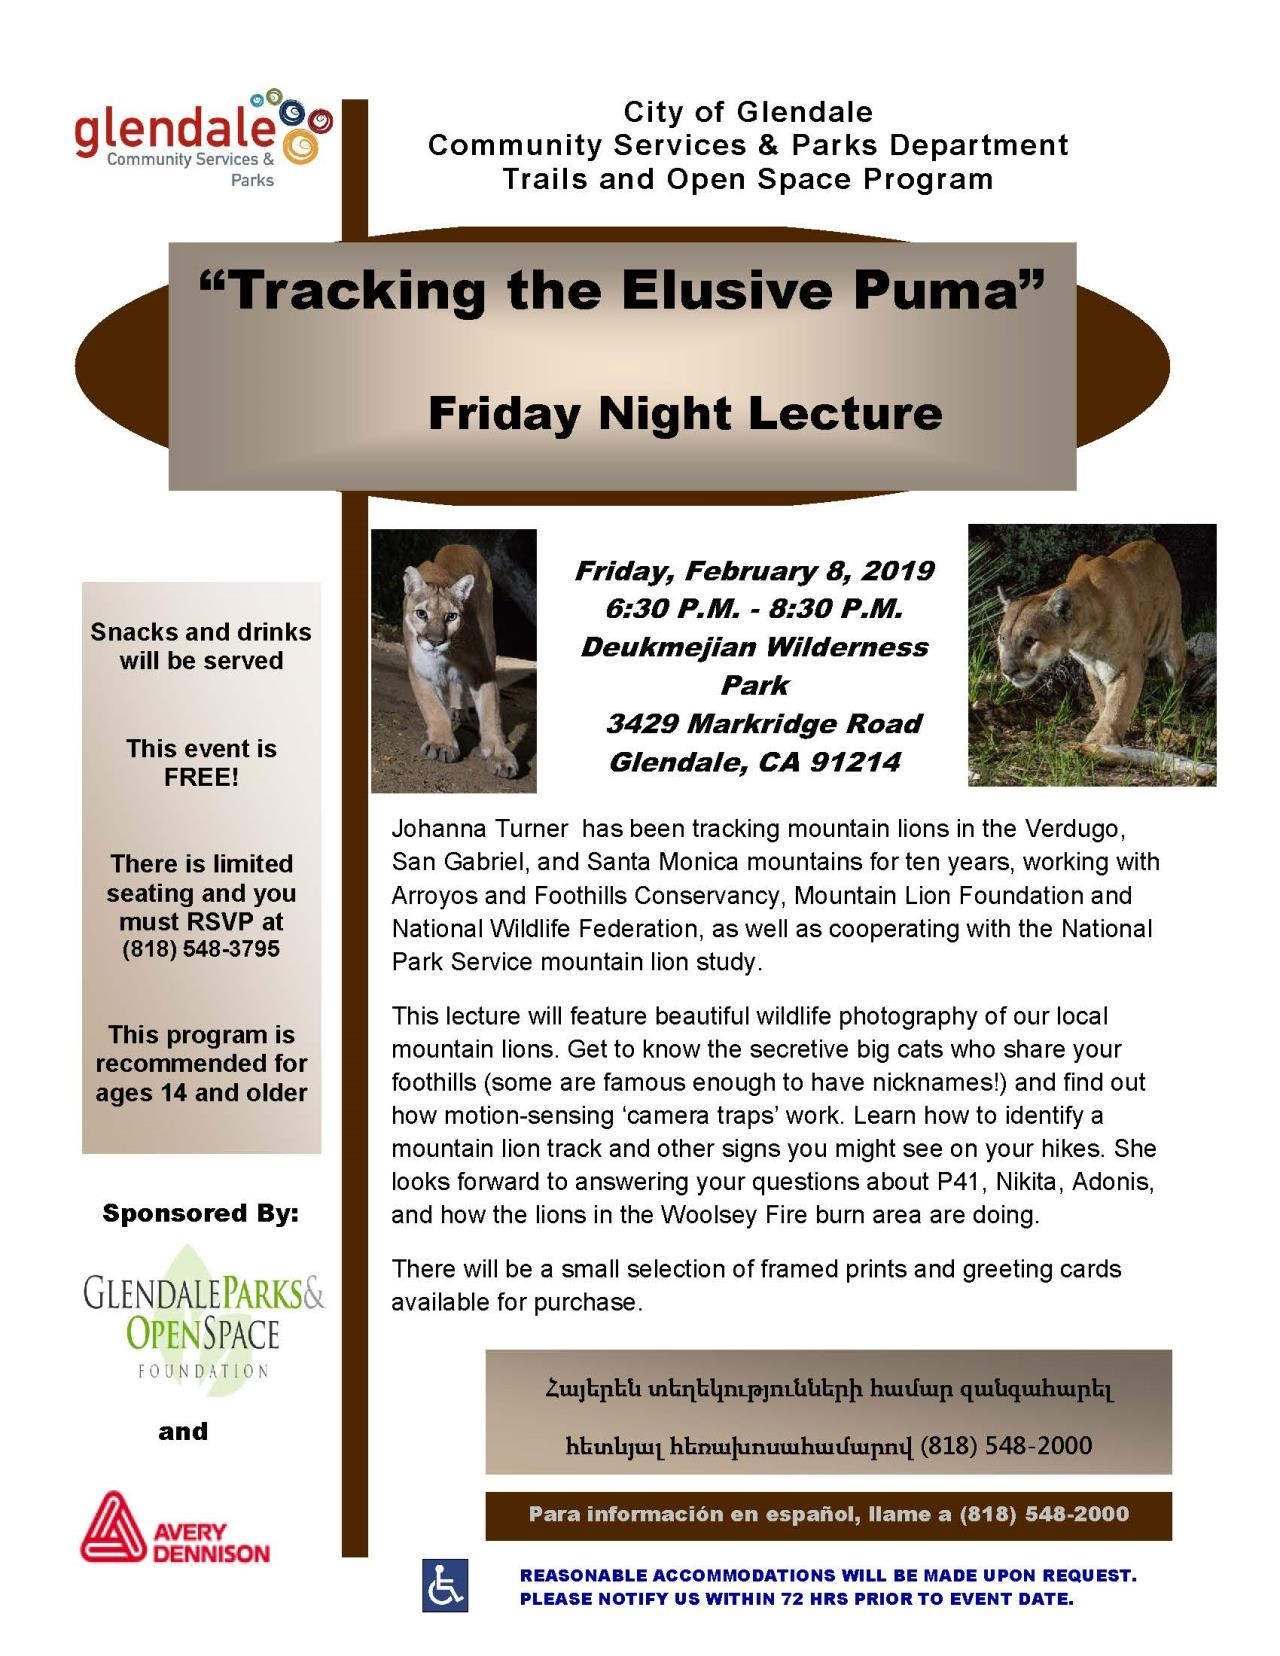 2019 2 8 Tracking the Elusive Puma